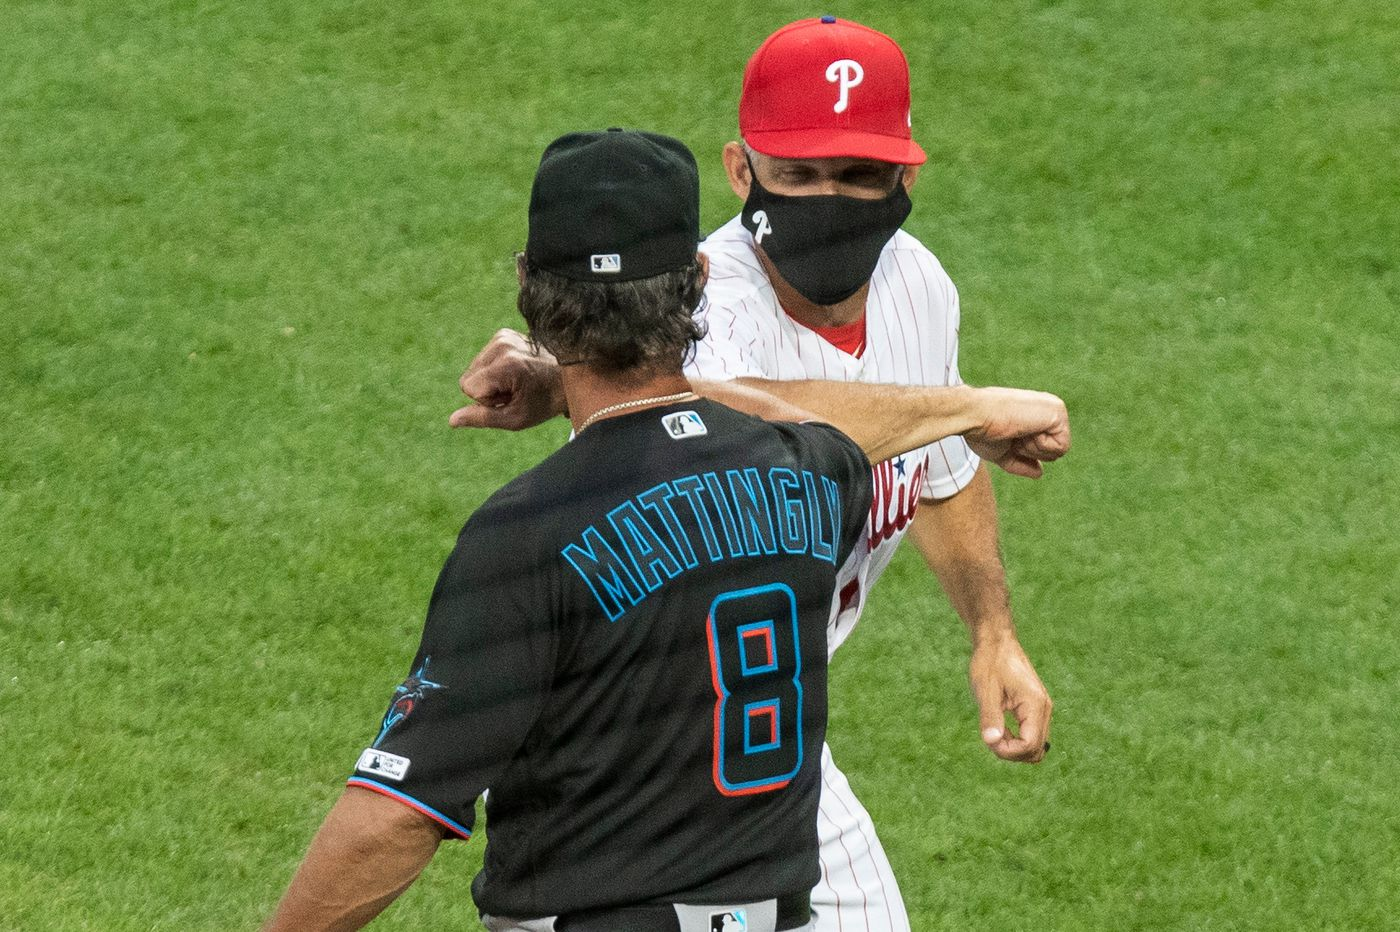 Phillies should opt out of this crazy COVID-19 baseball season | Bob Brookover